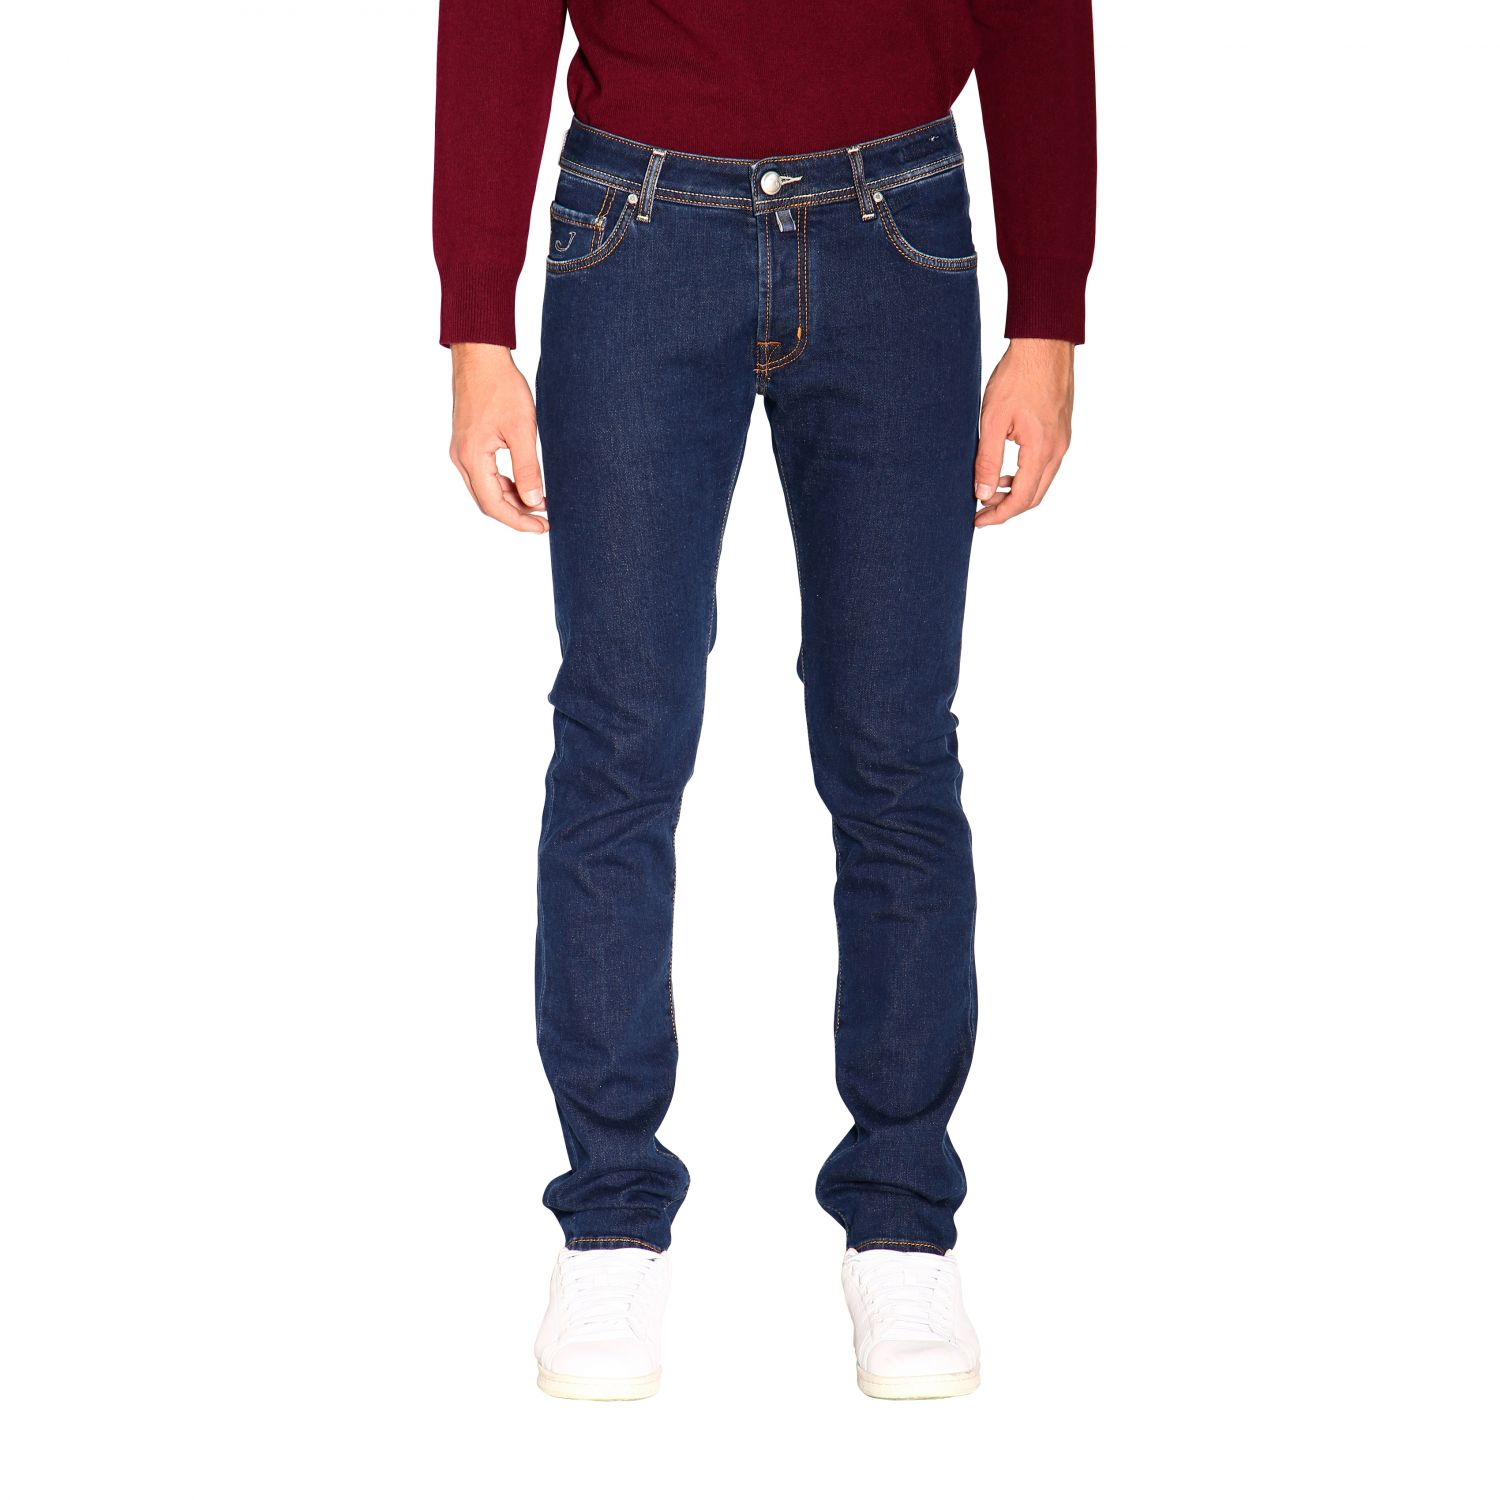 Jeans men Jacob Cohen denim 1